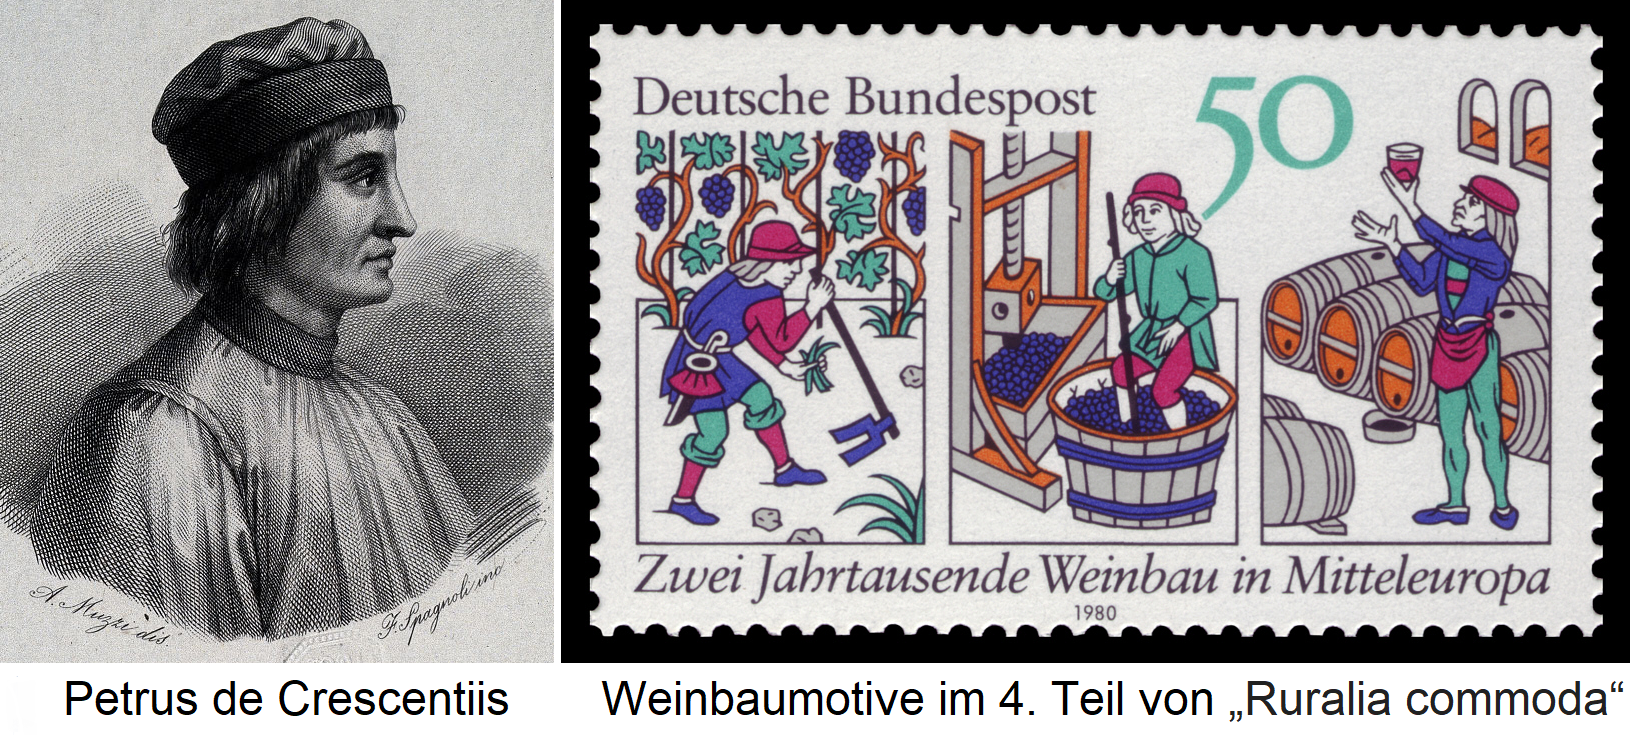 Petrus de Crescentiis - Portrait Drawing and Winemaking (stamp)